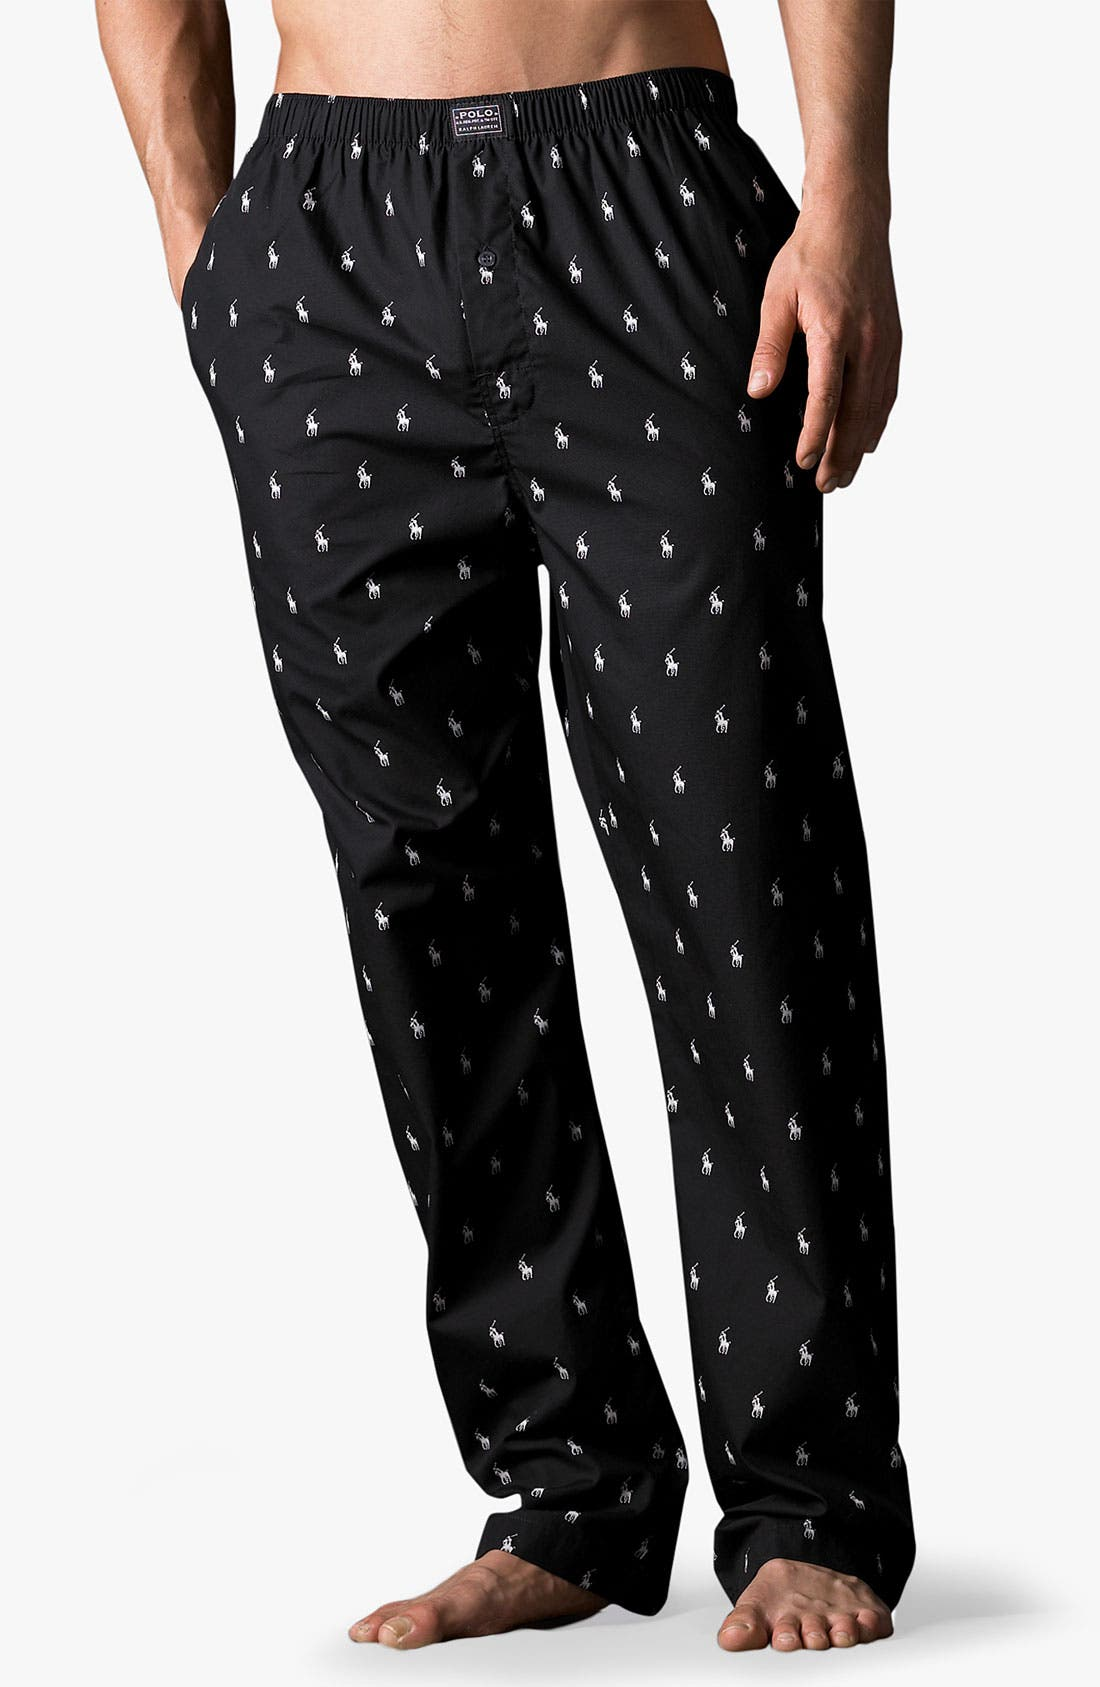 Alternate Image 1 Selected - Polo Ralph Lauren Print Lounge Pants (Big)